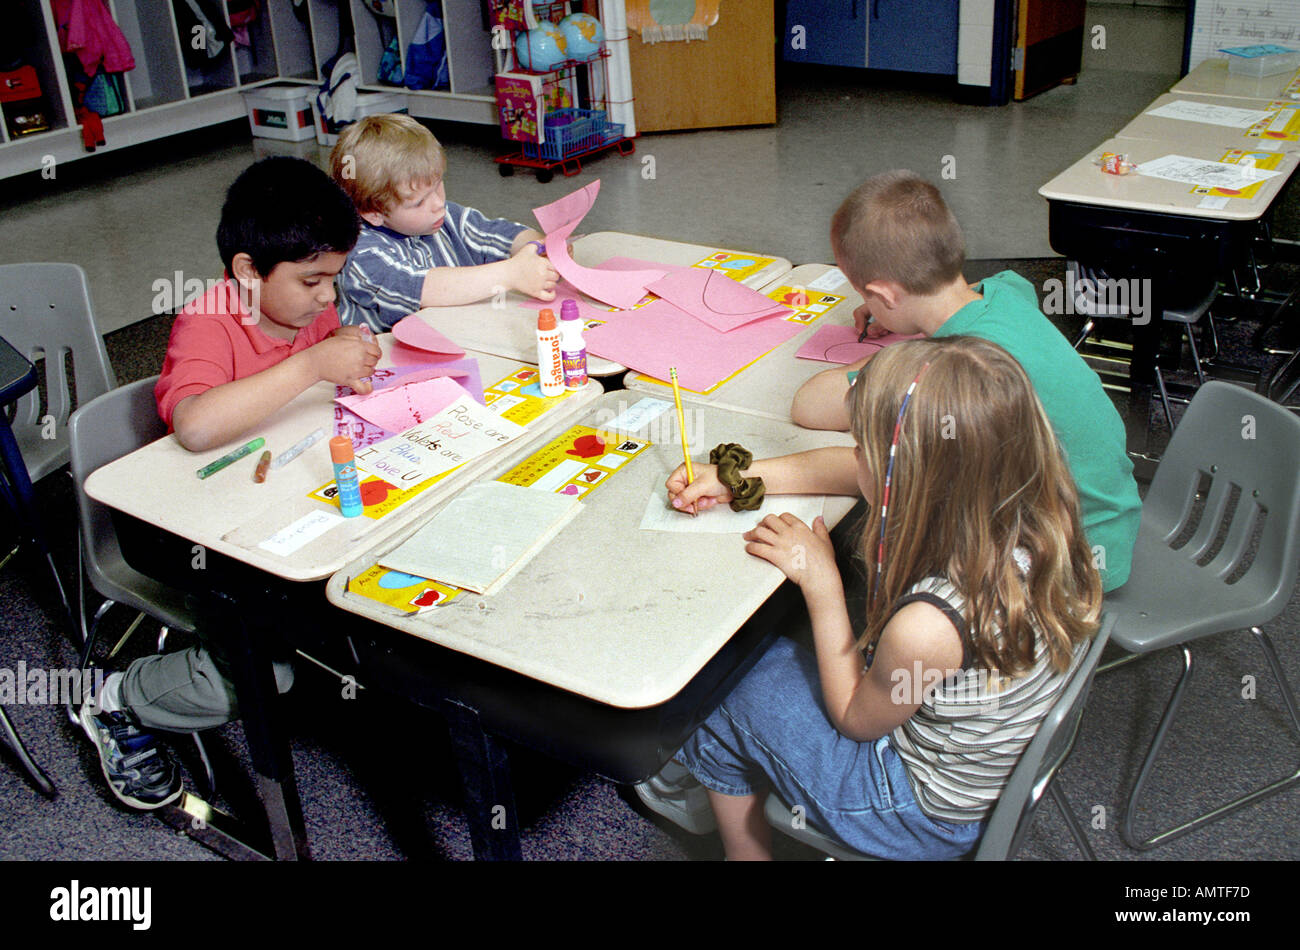 DM 1 st grade concept SPECIALIZATION 4 kids each do a different part of the whole product - Stock Image